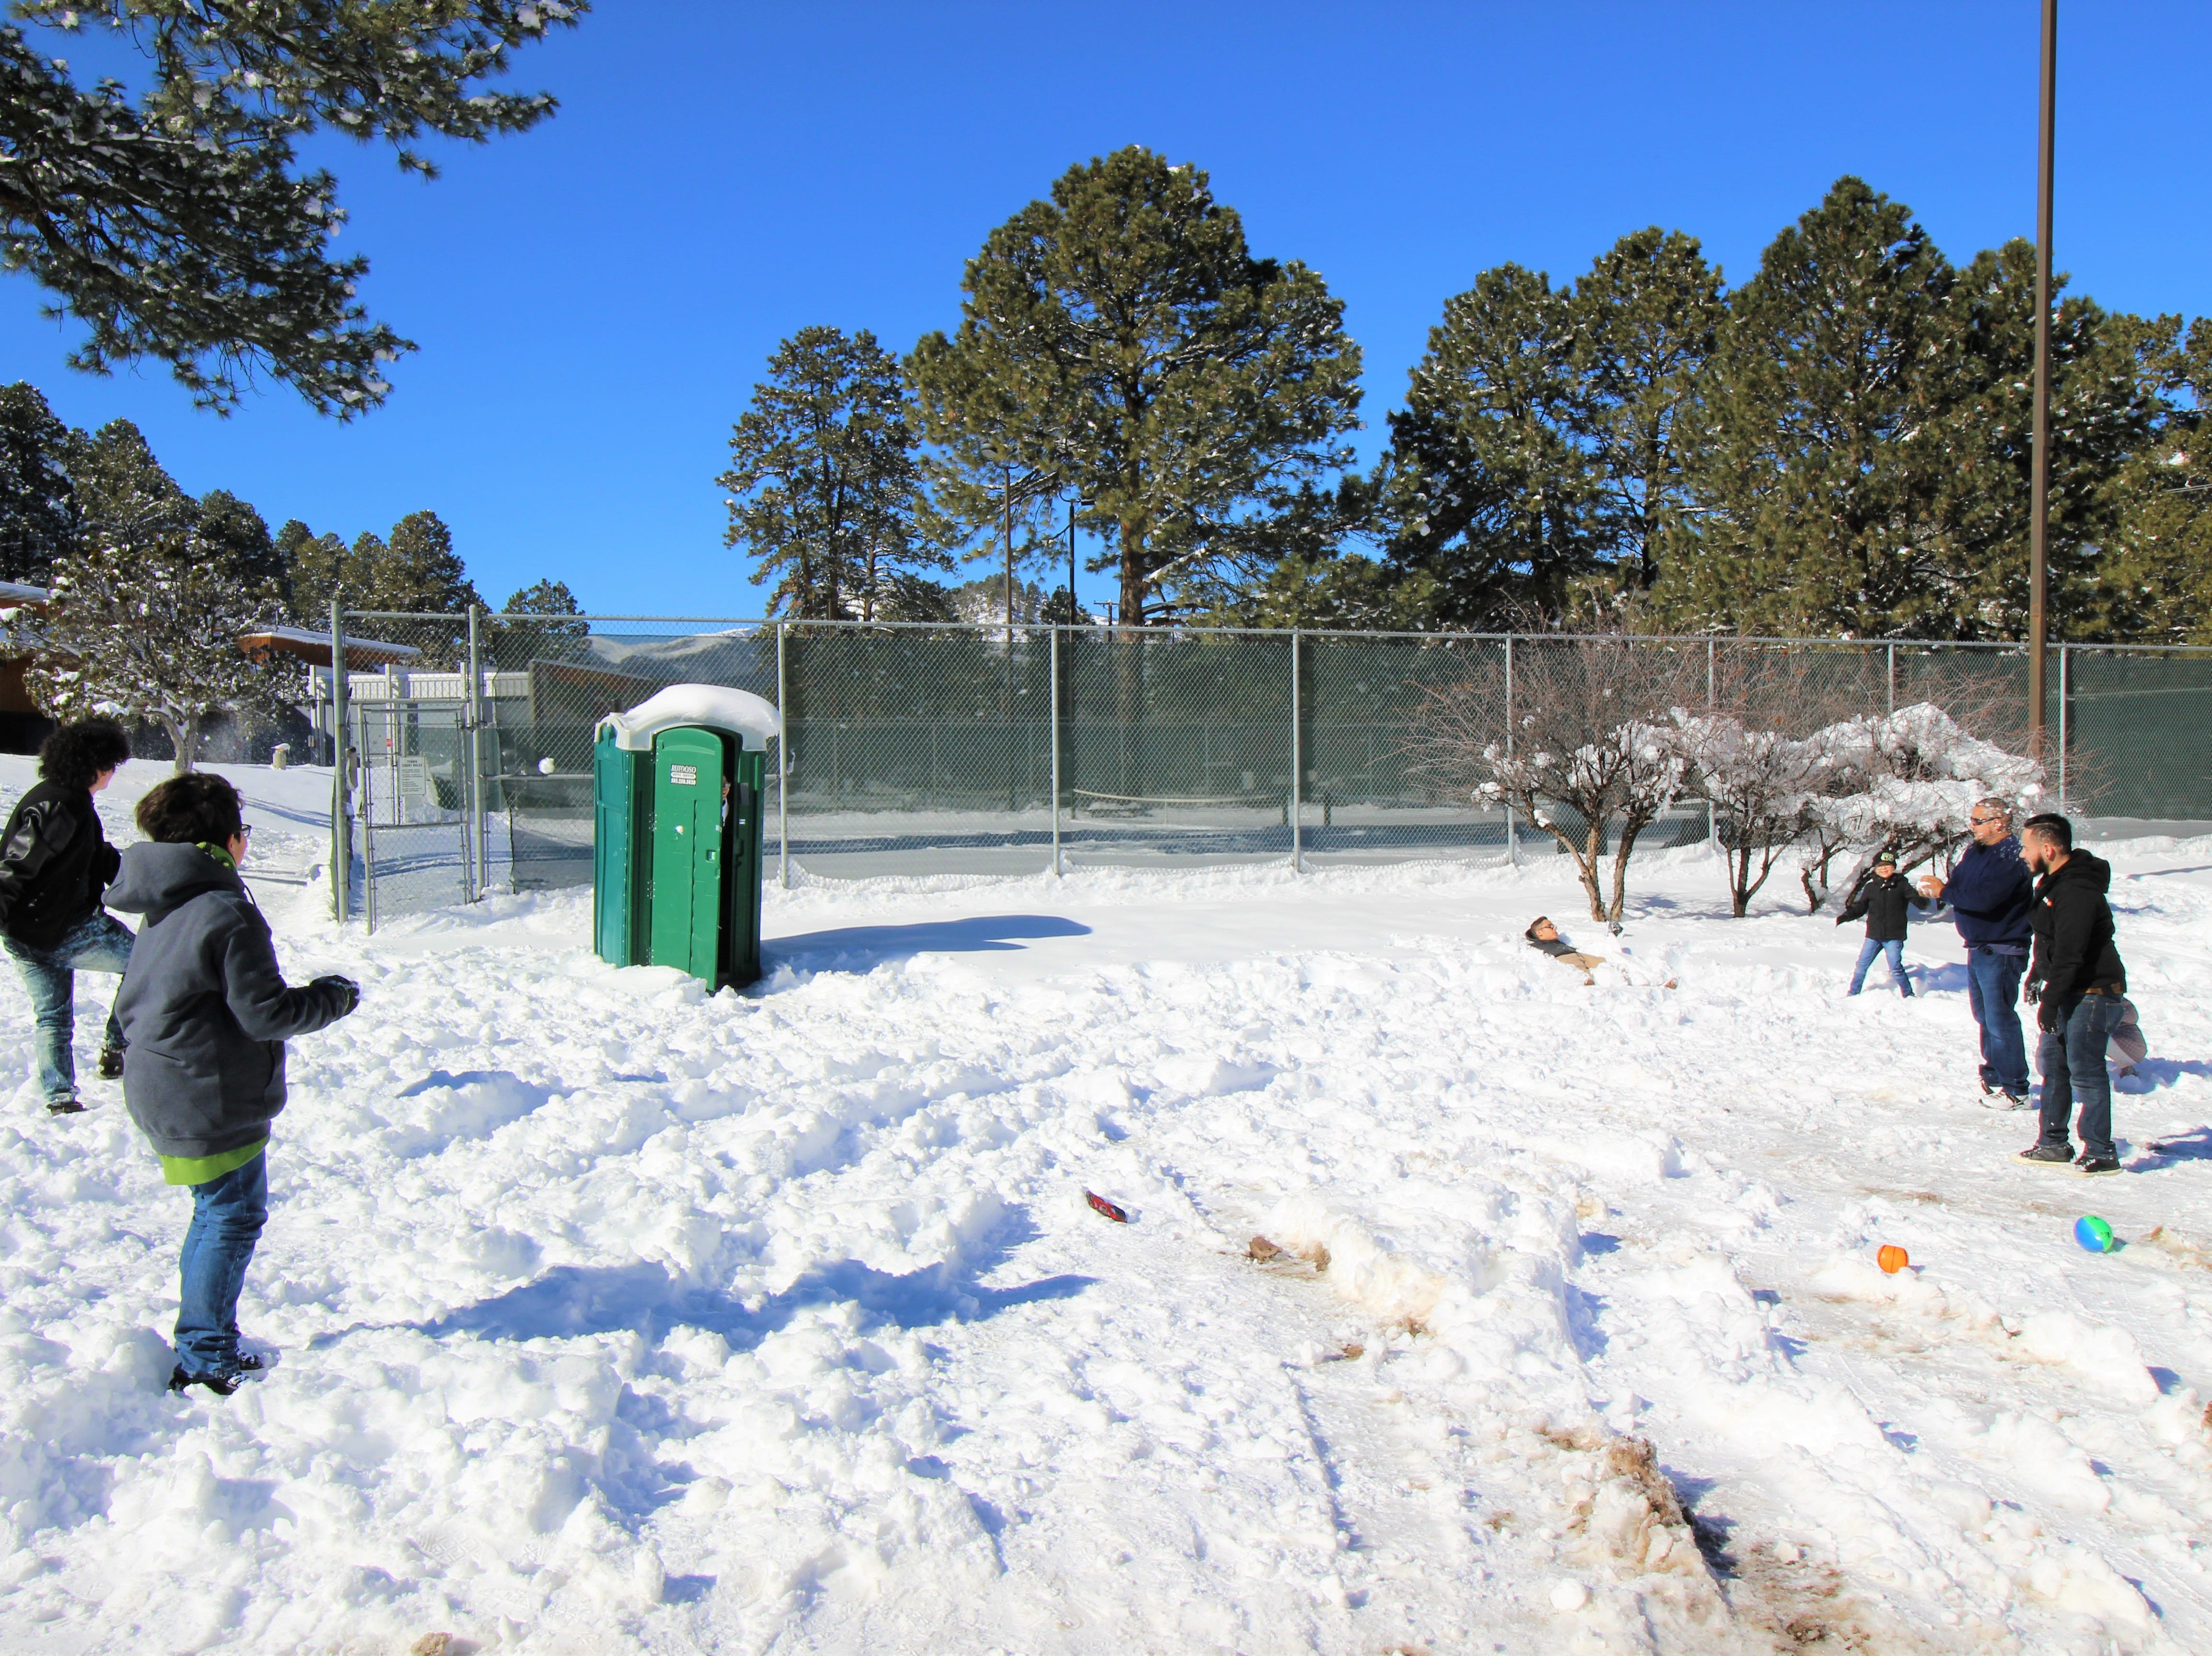 A family from Texas is enjoying the sunshine after a major snow storm hit Lincoln County.